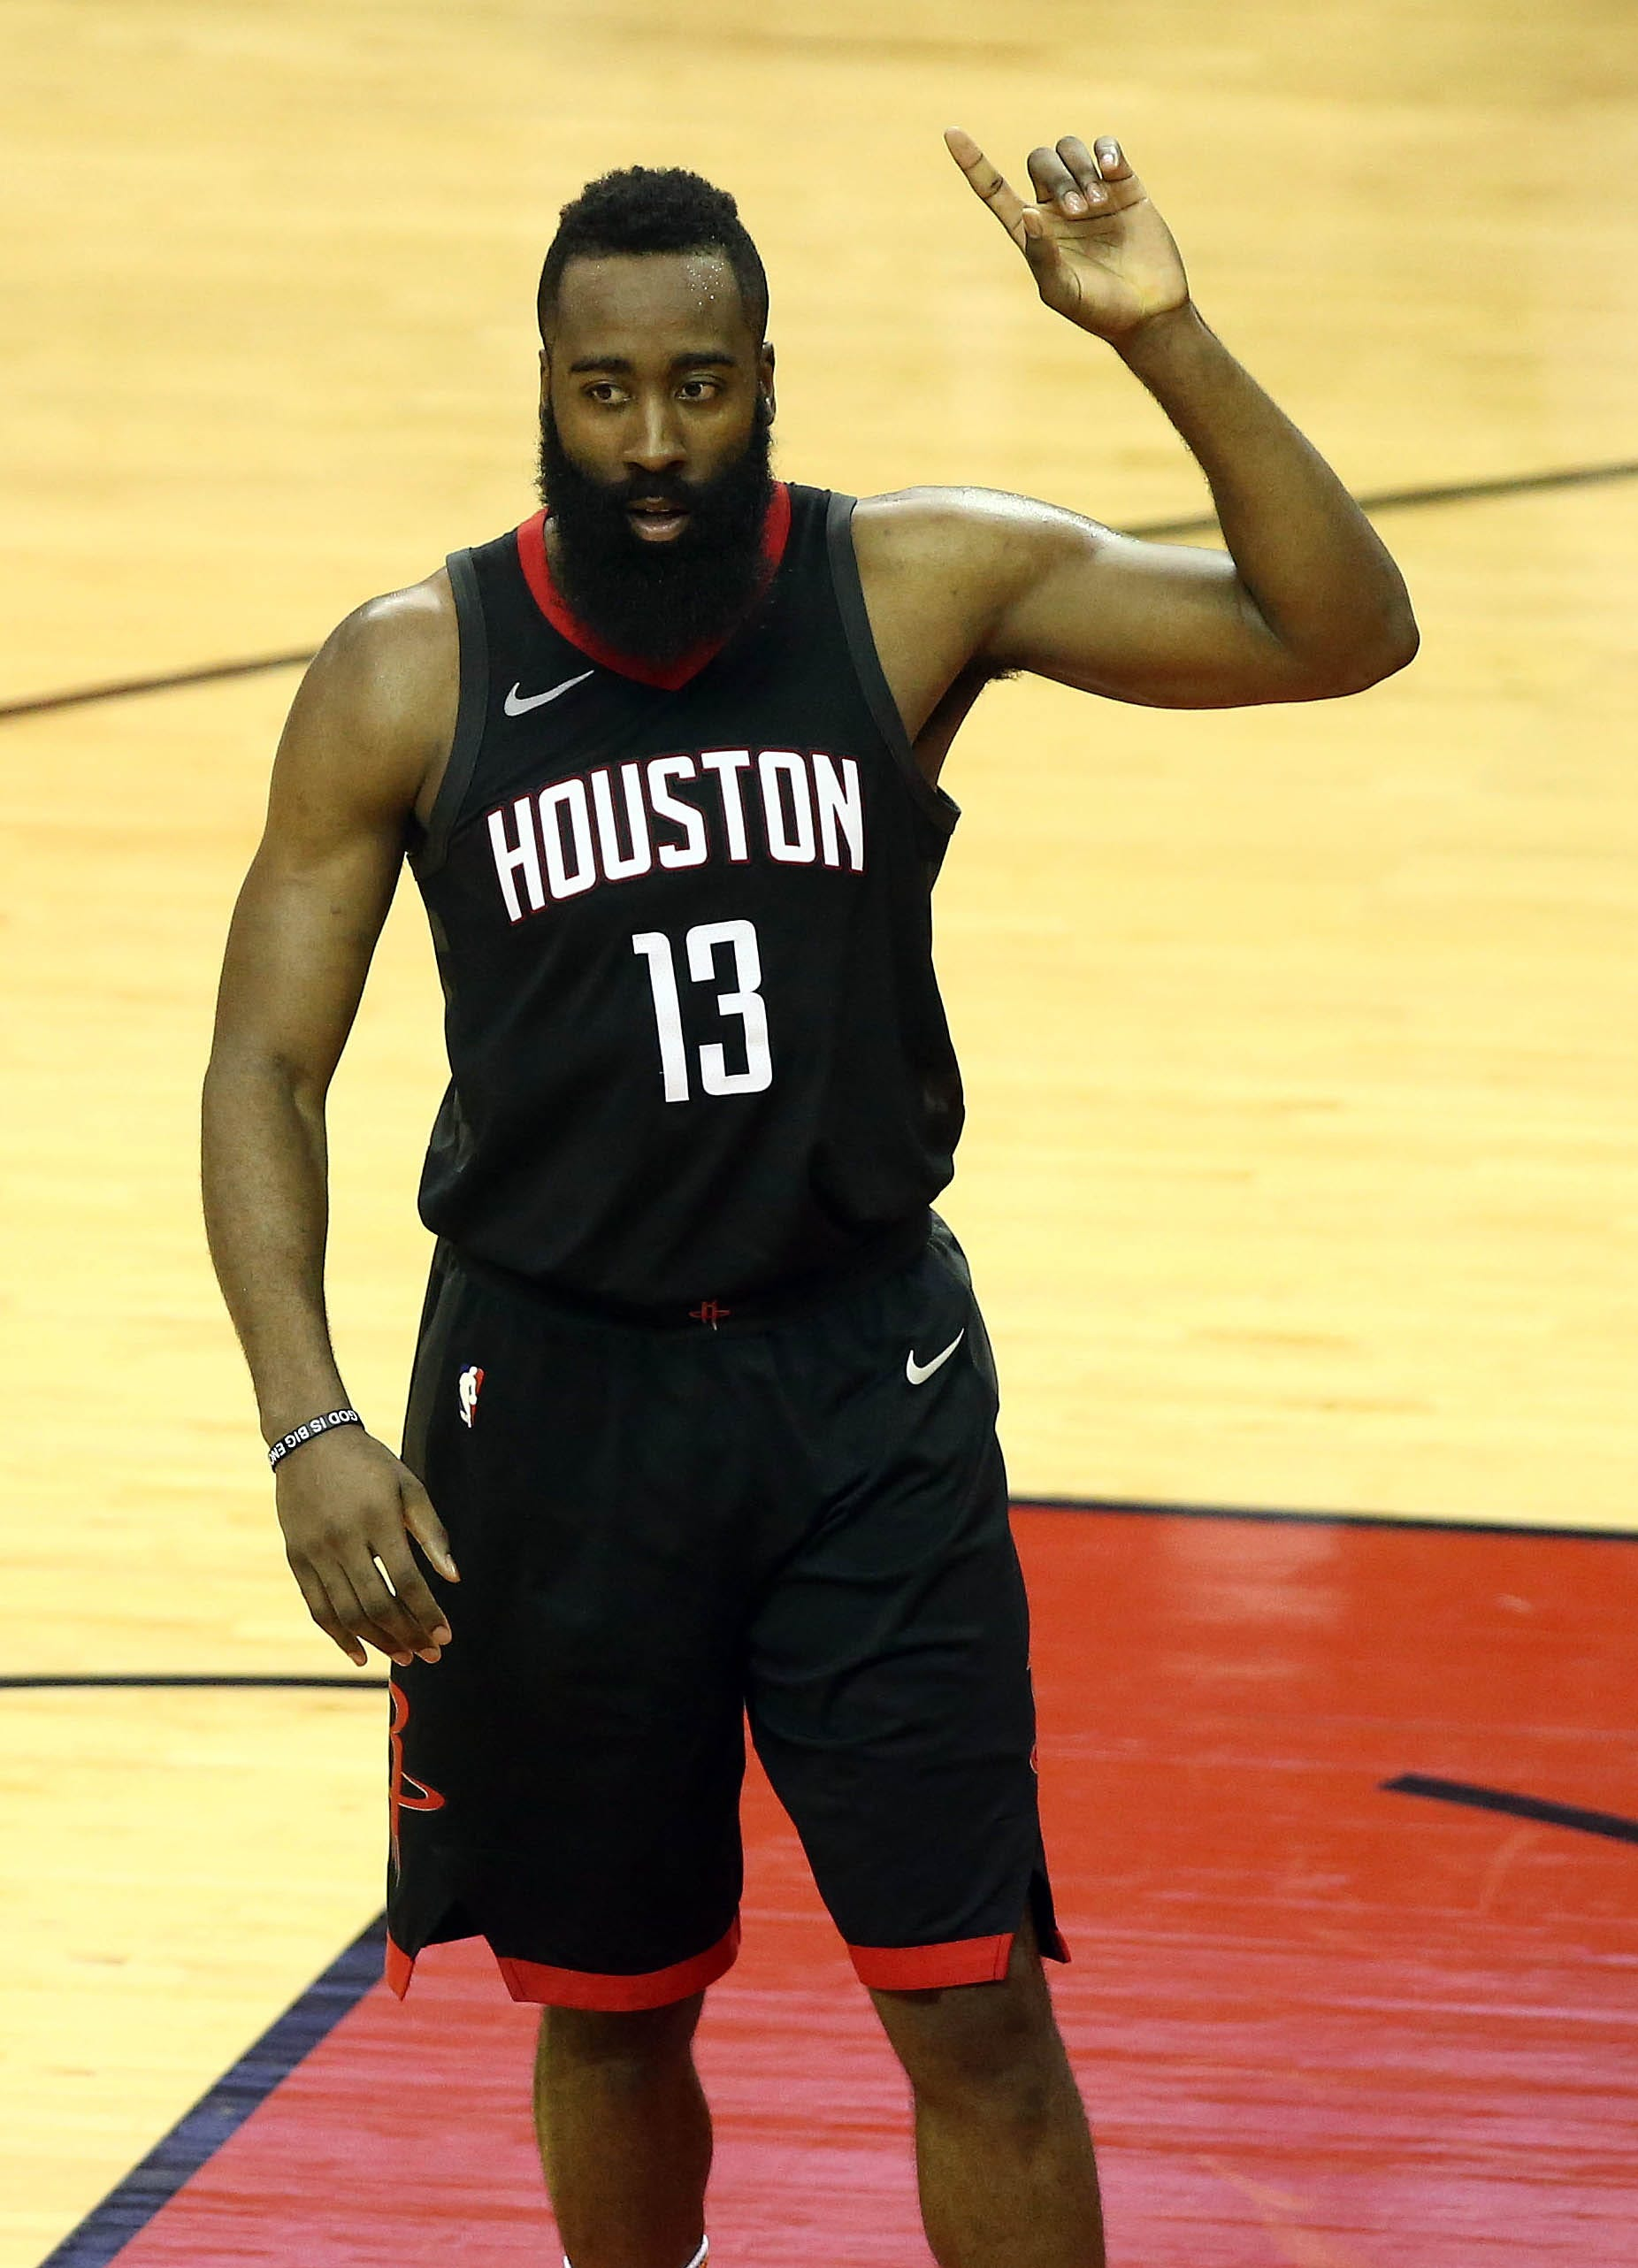 Rockets star James Harden tied to incident at Arizona nightclub, police say